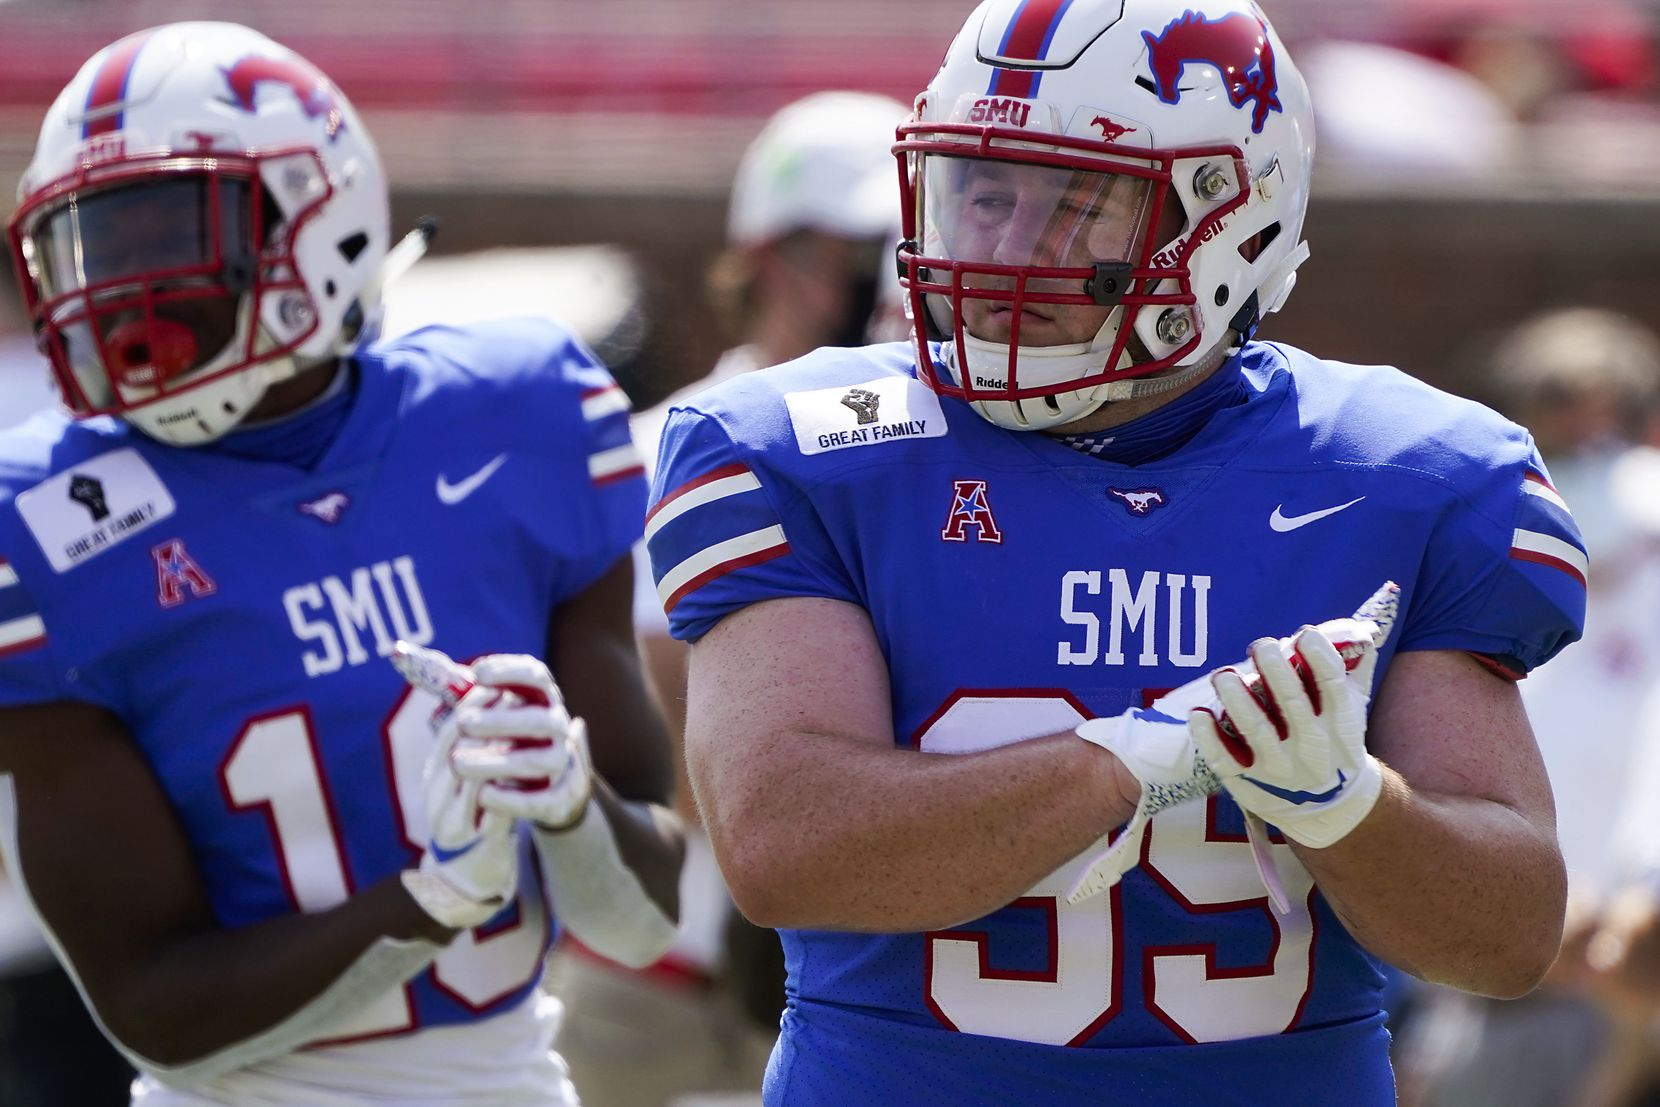 SMU defensive tackle Will Jones (95) warms up before an NCAA football game against Memphis at Ford Stadium on Saturday, Oct. 3, 2020, in Dallas. (Smiley N. Pool/The Dallas Morning News)